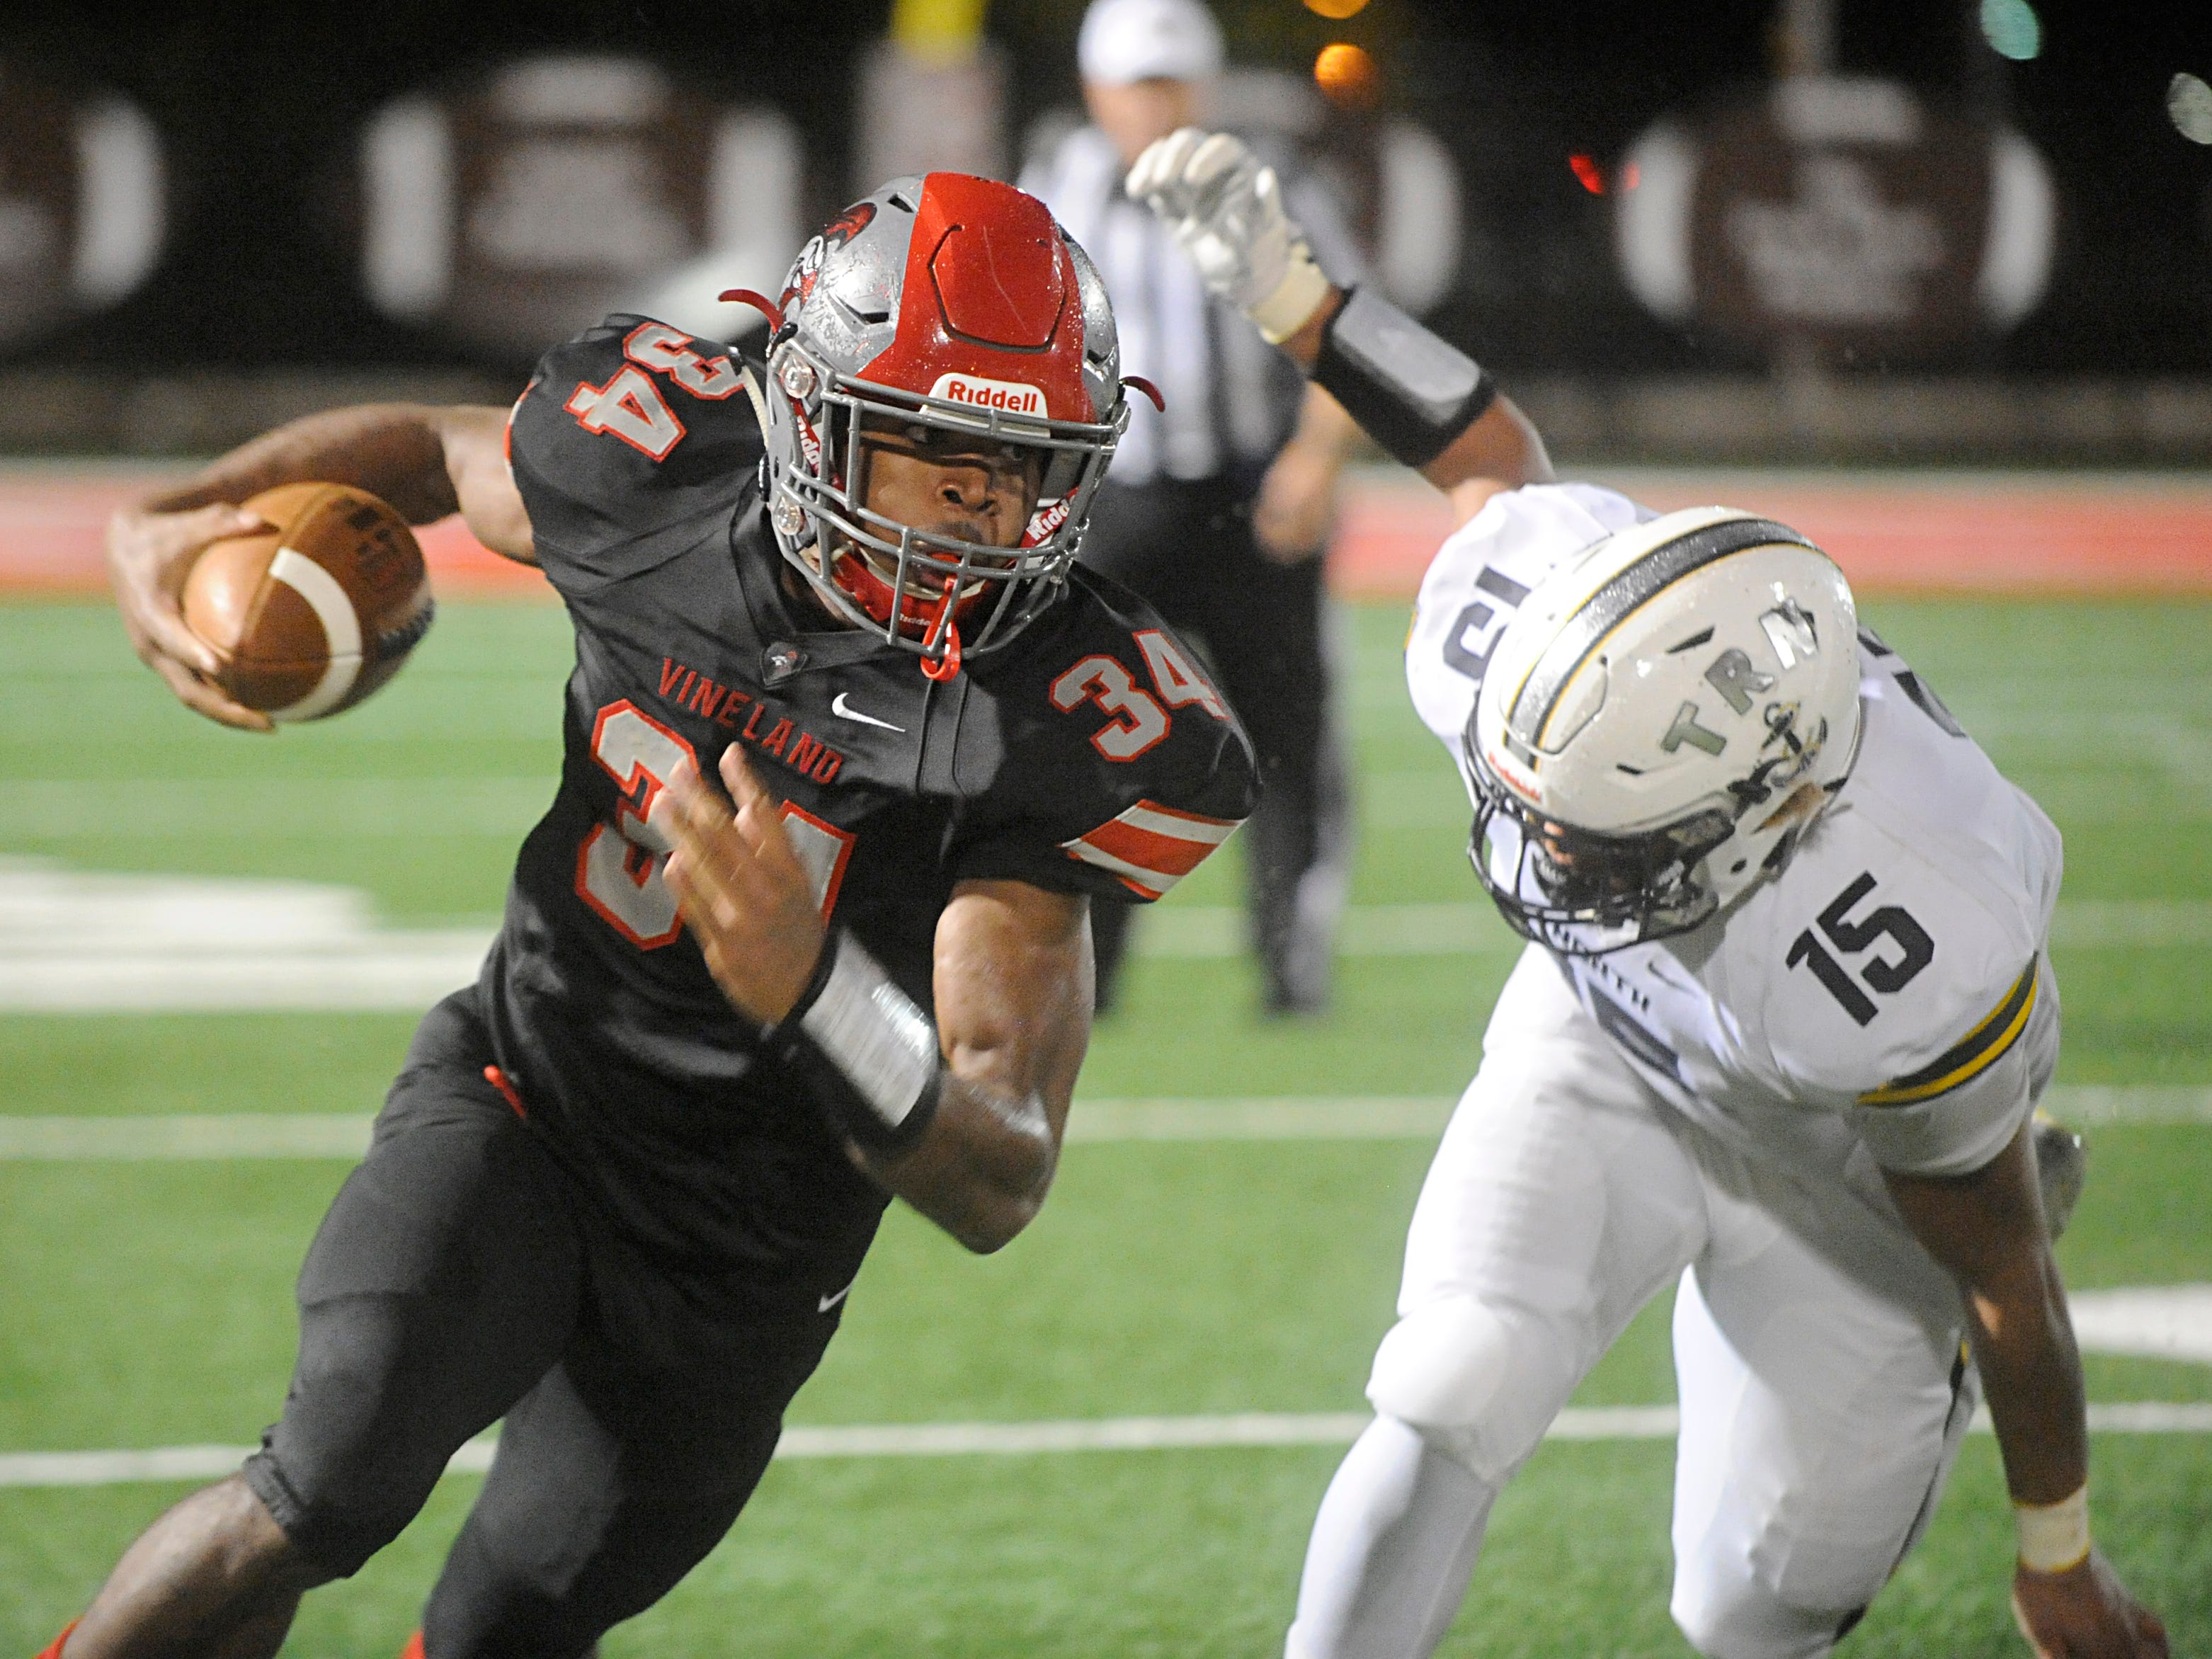 Vineland's Nahzir Broome runs for a gain against visiting Toms River North. The Fighting Clan blanked the Mariners, 33-0 on Friday, November 2, 2018.